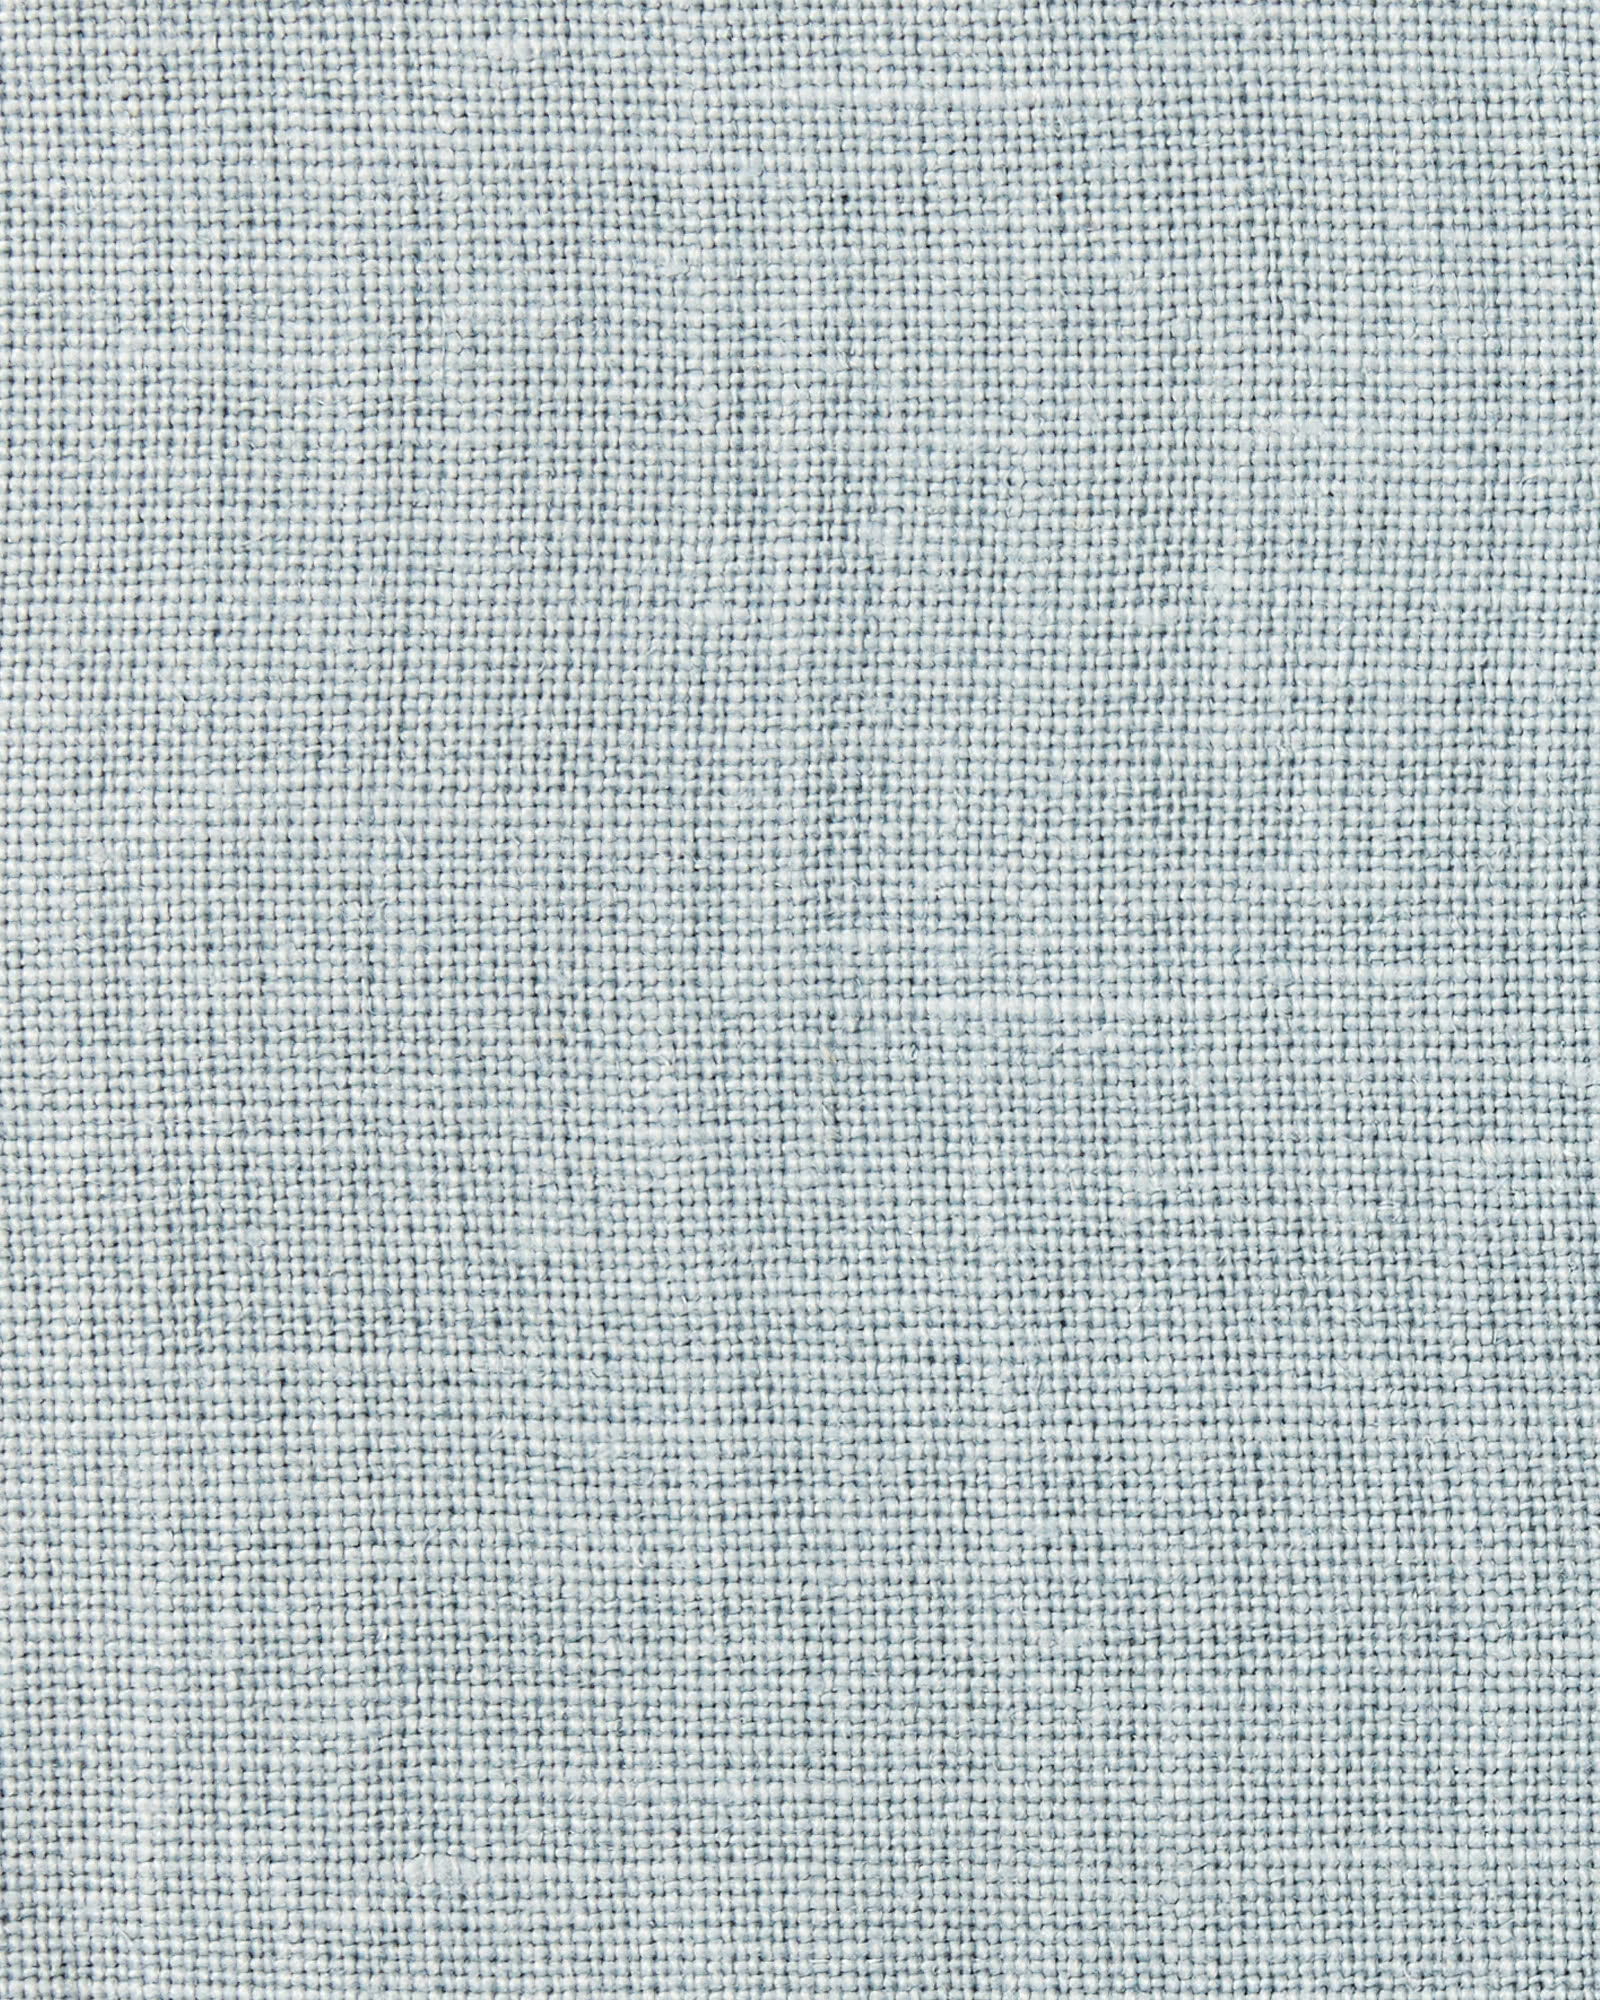 Washed Linen Fabric - Seaglass, Seaglass